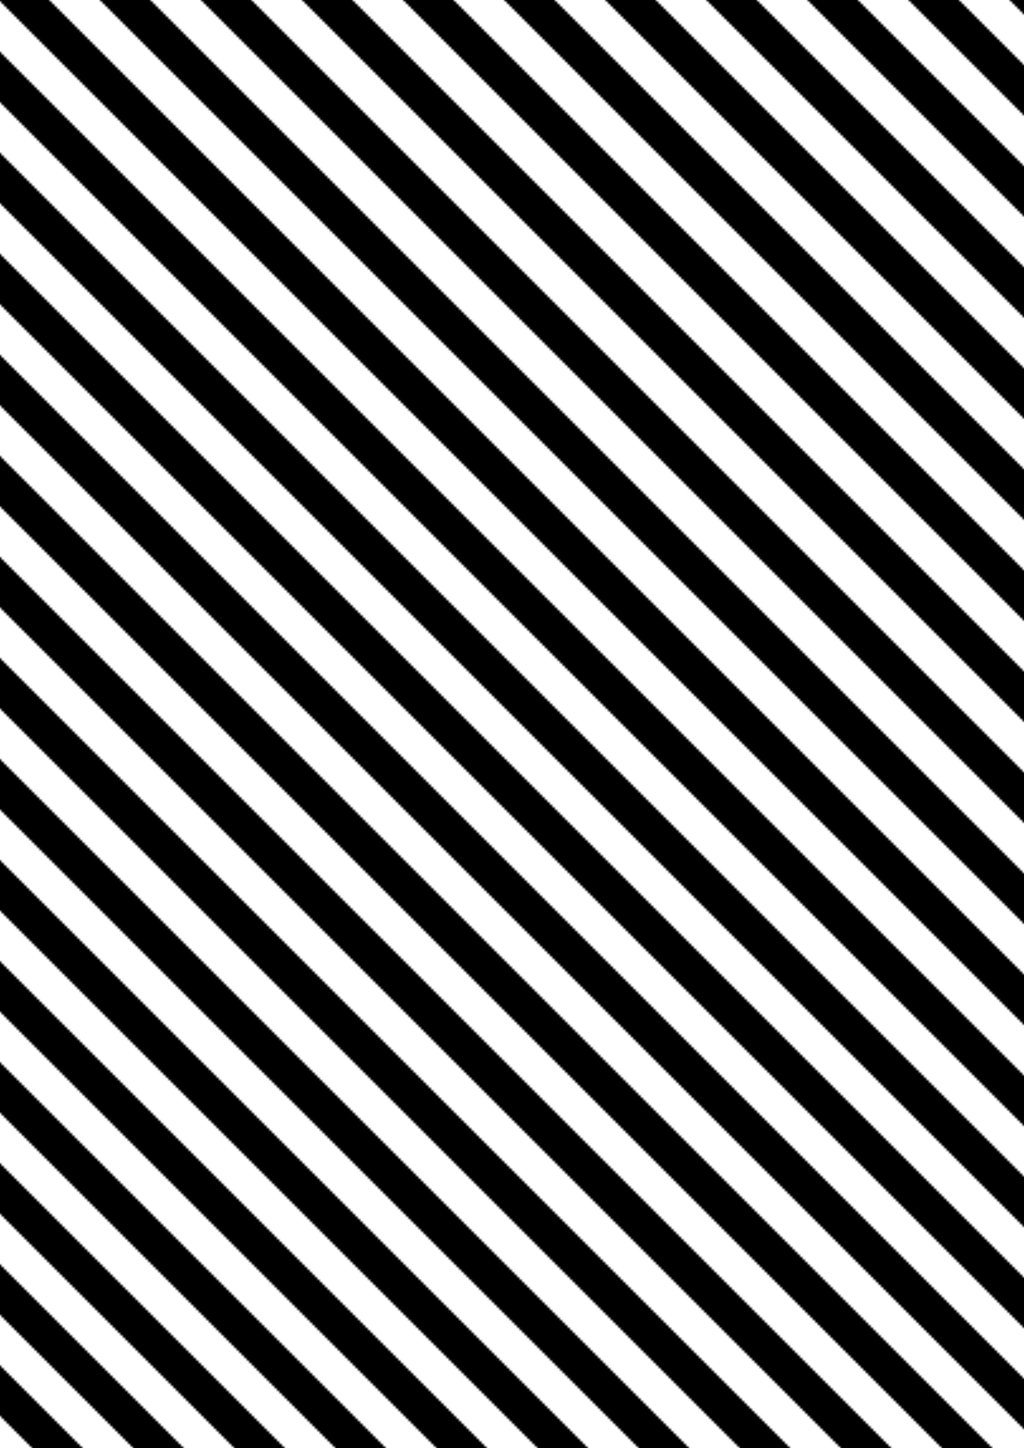 Black white diagonal stripes paper dina4 freebies by EowynGraphics on 1024x1448